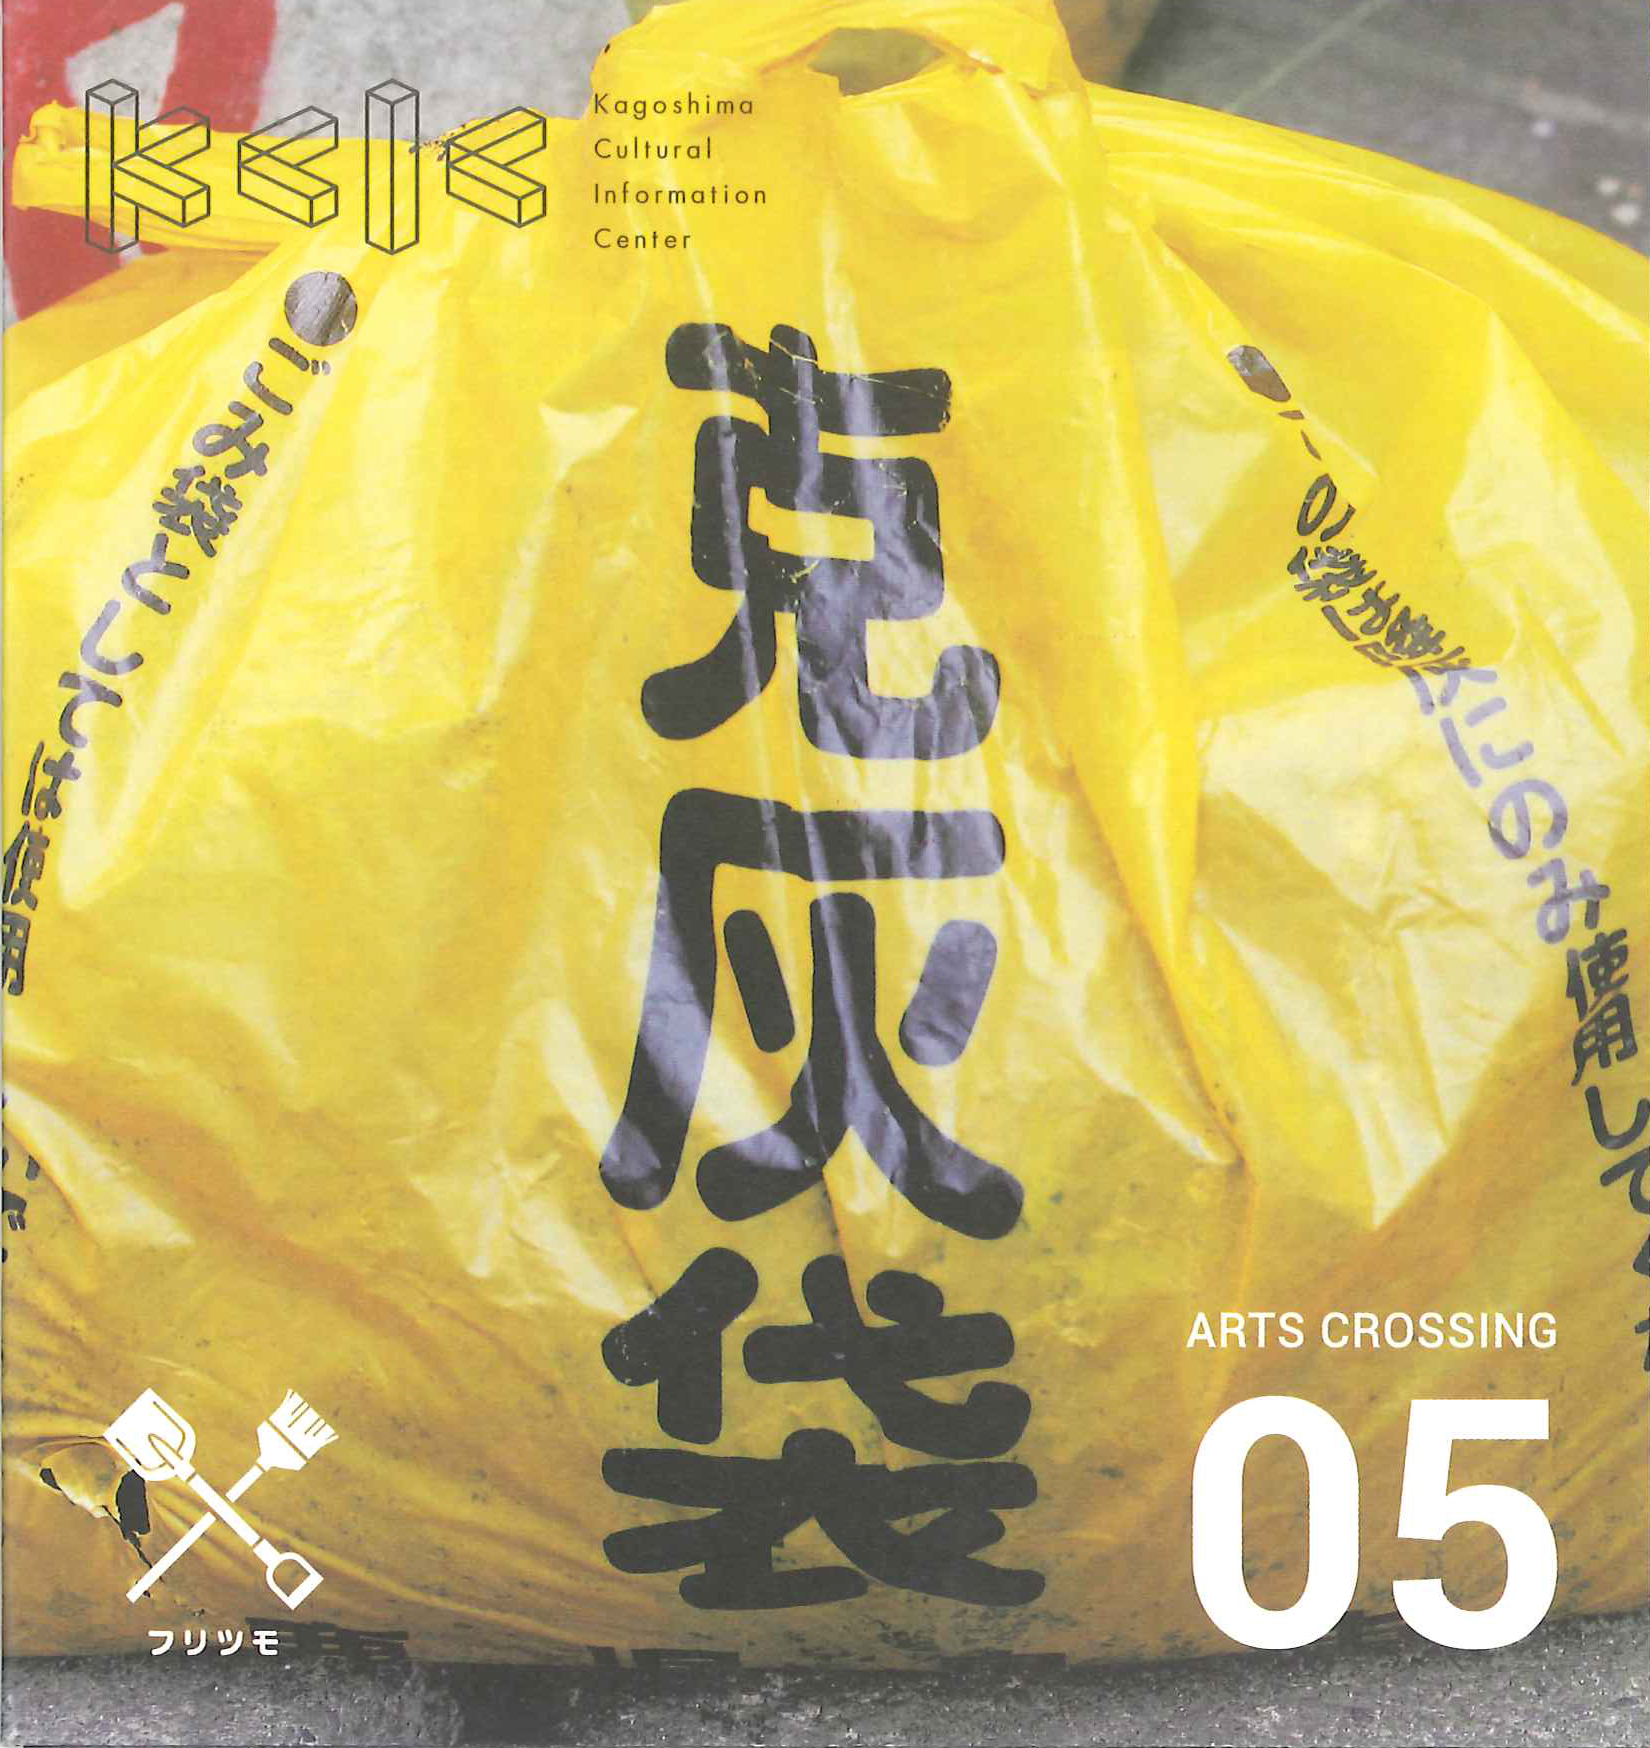 Arts Crossing 05